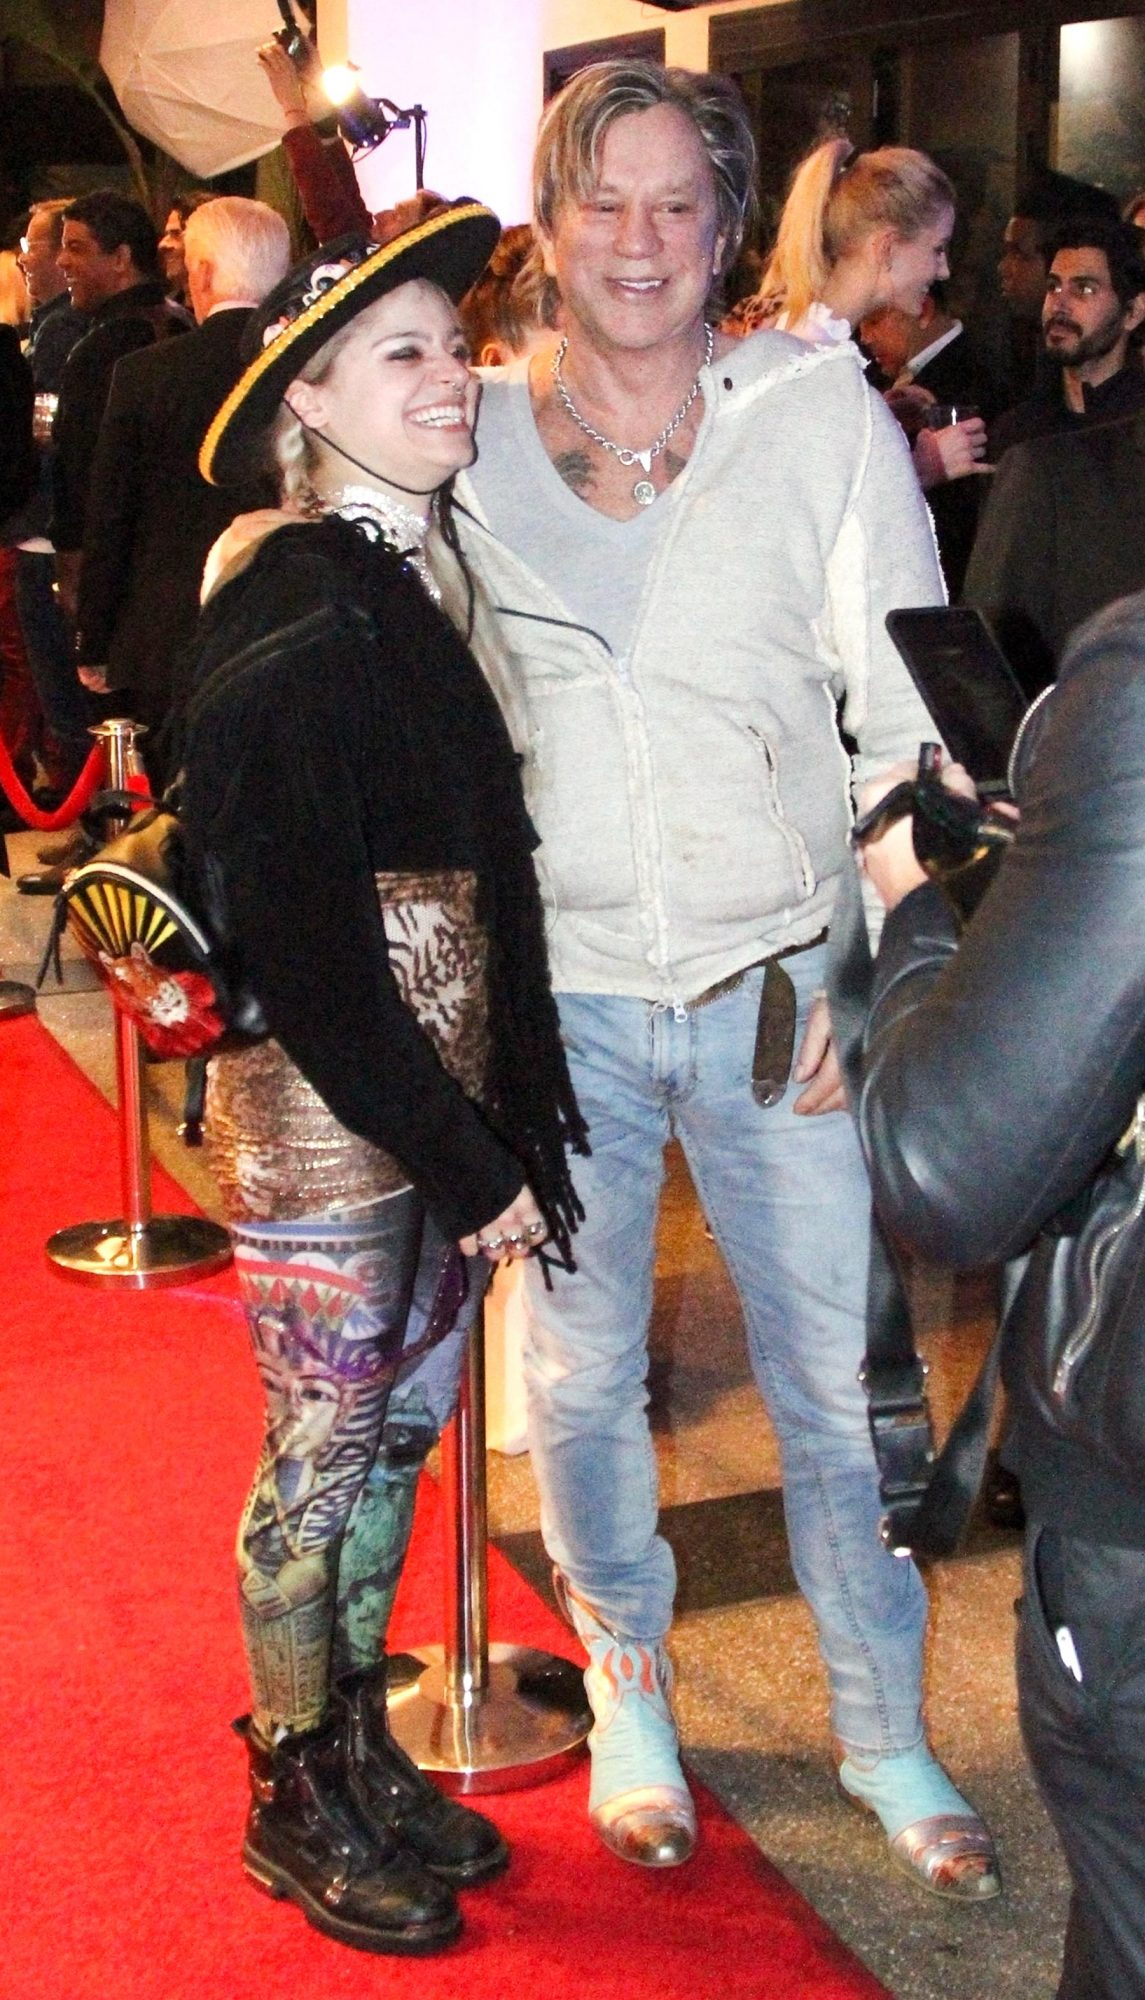 Mickey Rourke attends a celeb Christmas party at Caffe Roma